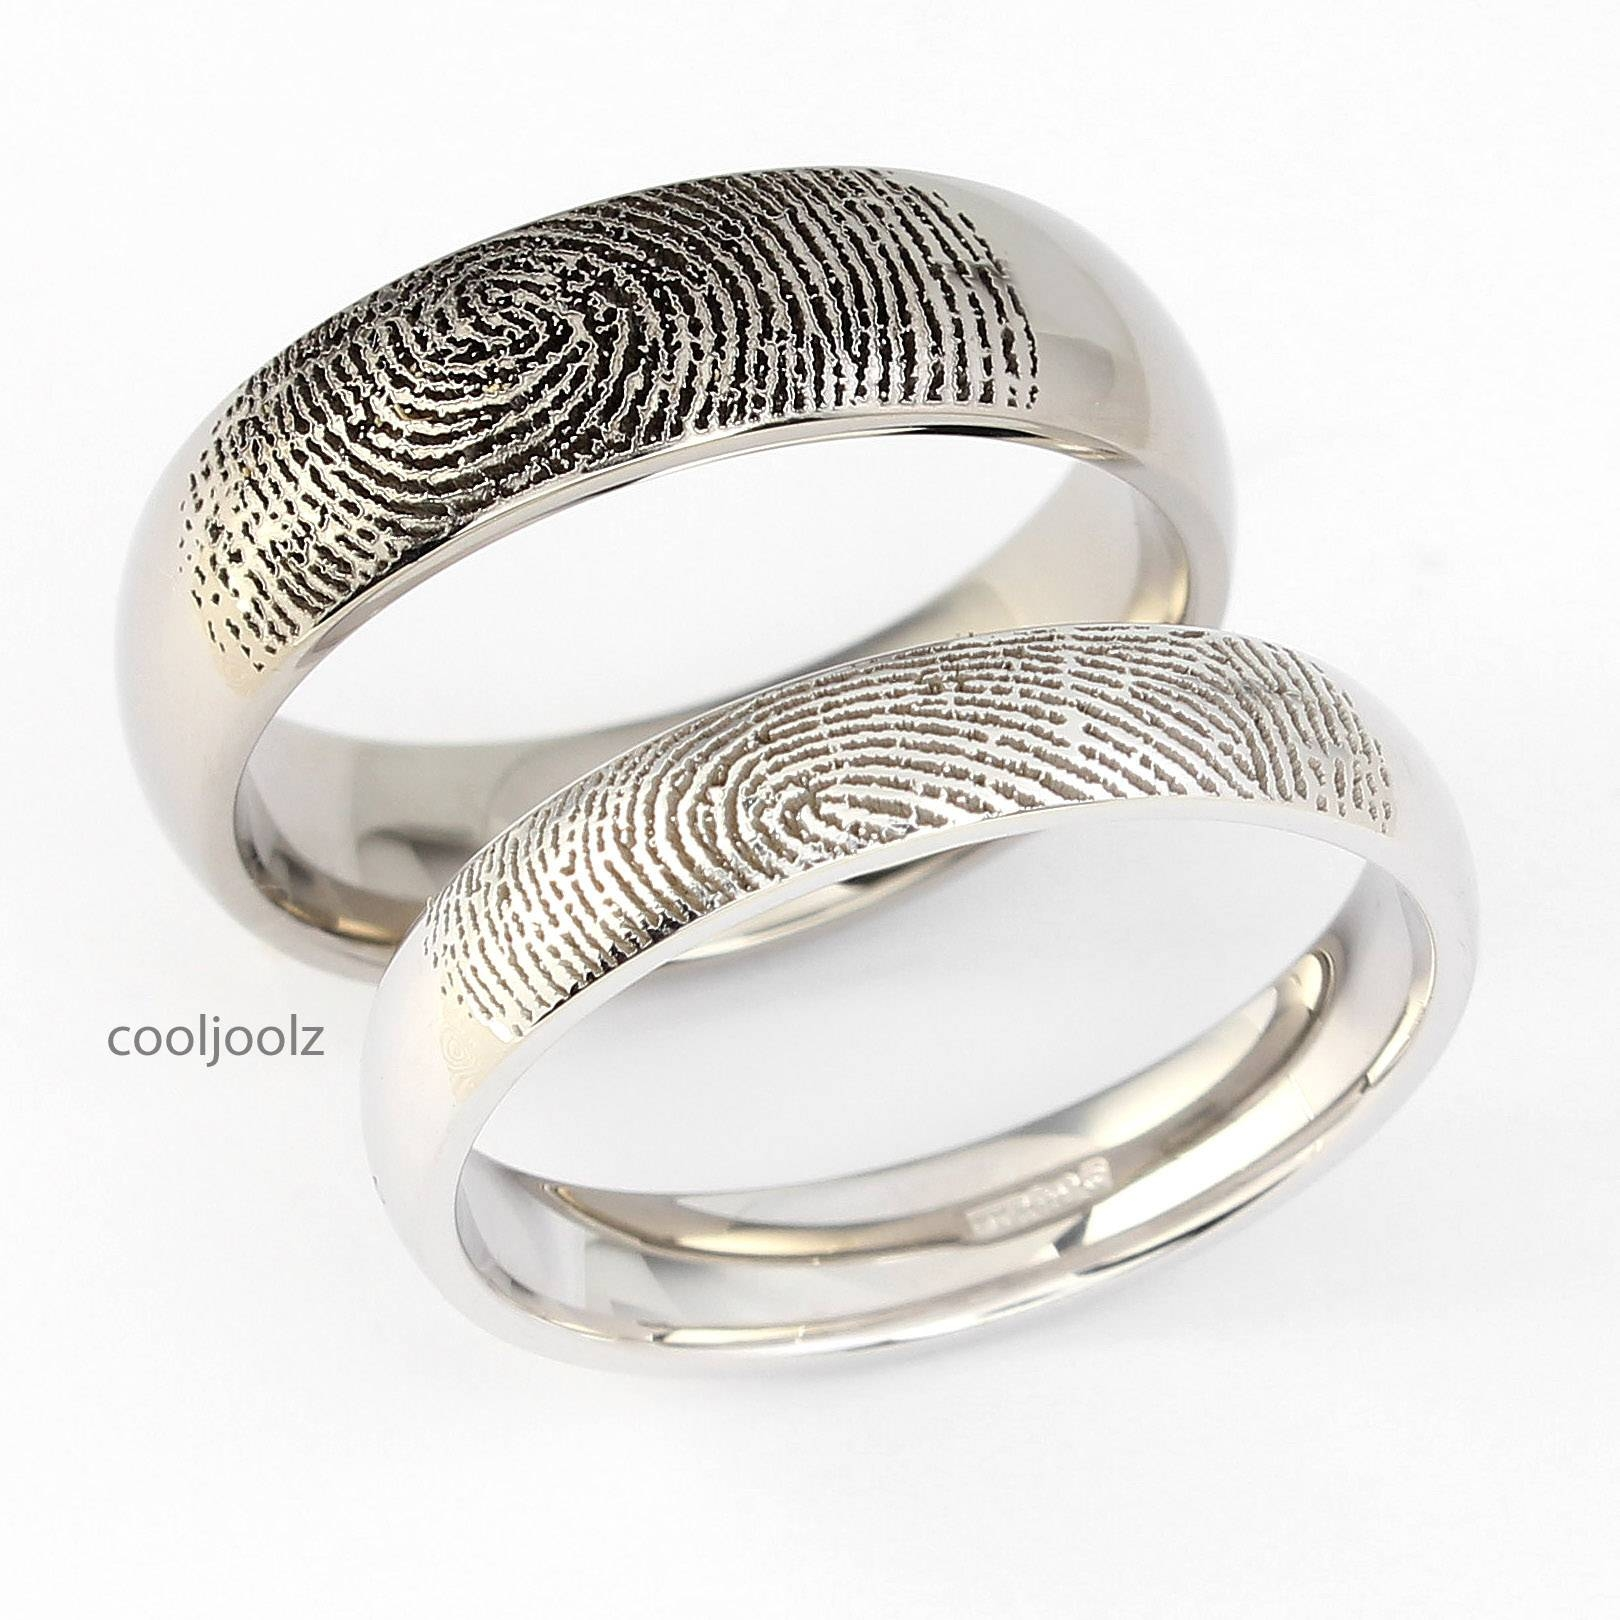 made fingerprint white ring designs wavy wedding rings lines mobile text insignety diamonds